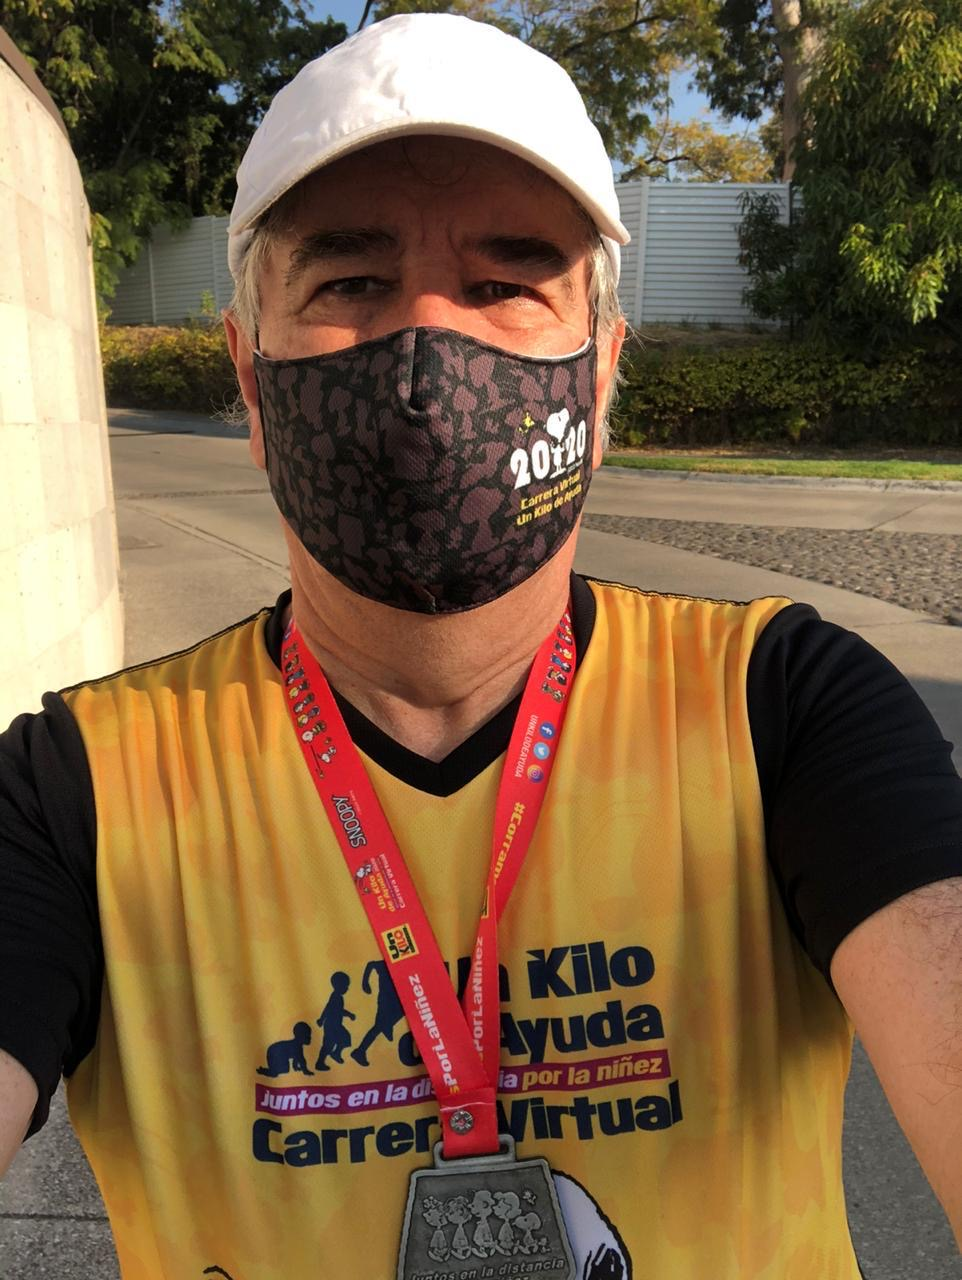 Carrera Virtual Un Kilo de Ayuda 36